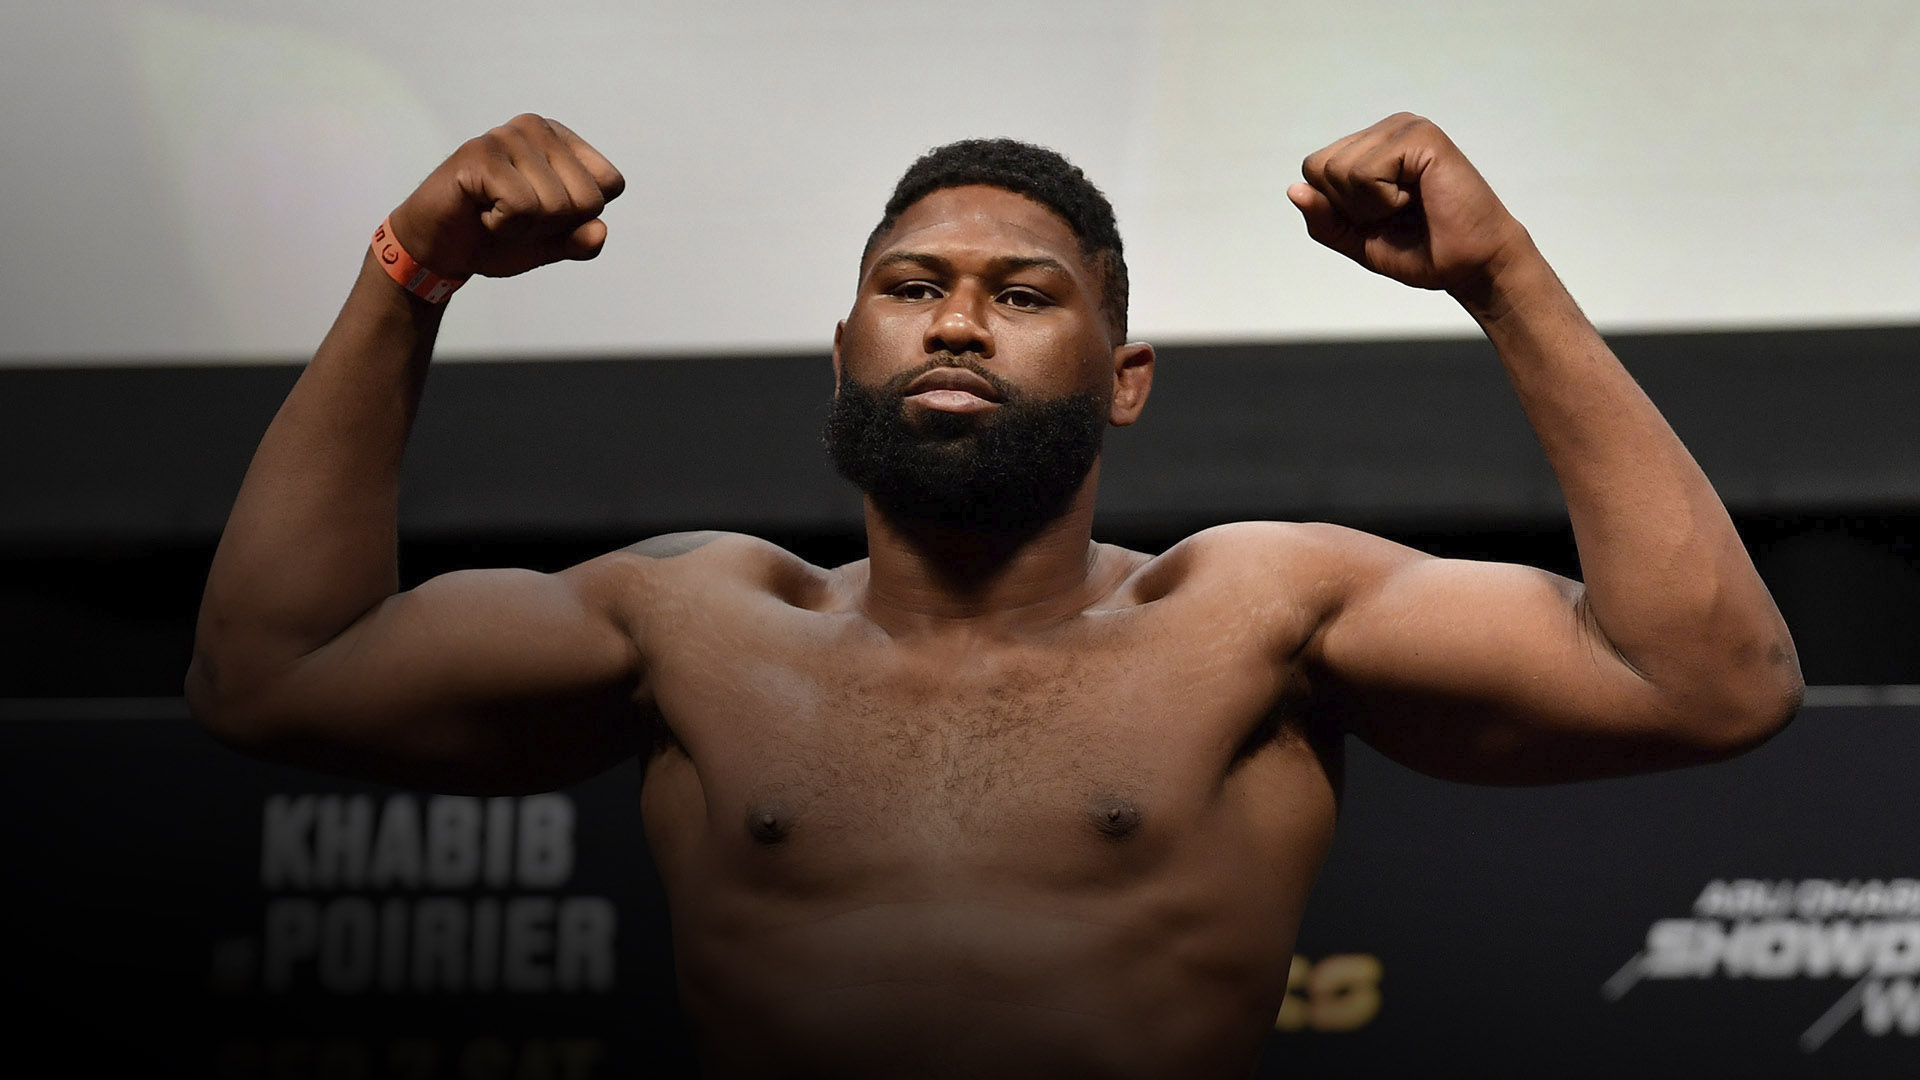 Curtis Blaydes poses on the scale during the UFC 242 weigh-in at The Arena on September 6, 2019 in Abu Dhabi, United Arab Emirates. (Photo by Jeff Bottari/Zuffa LLC)